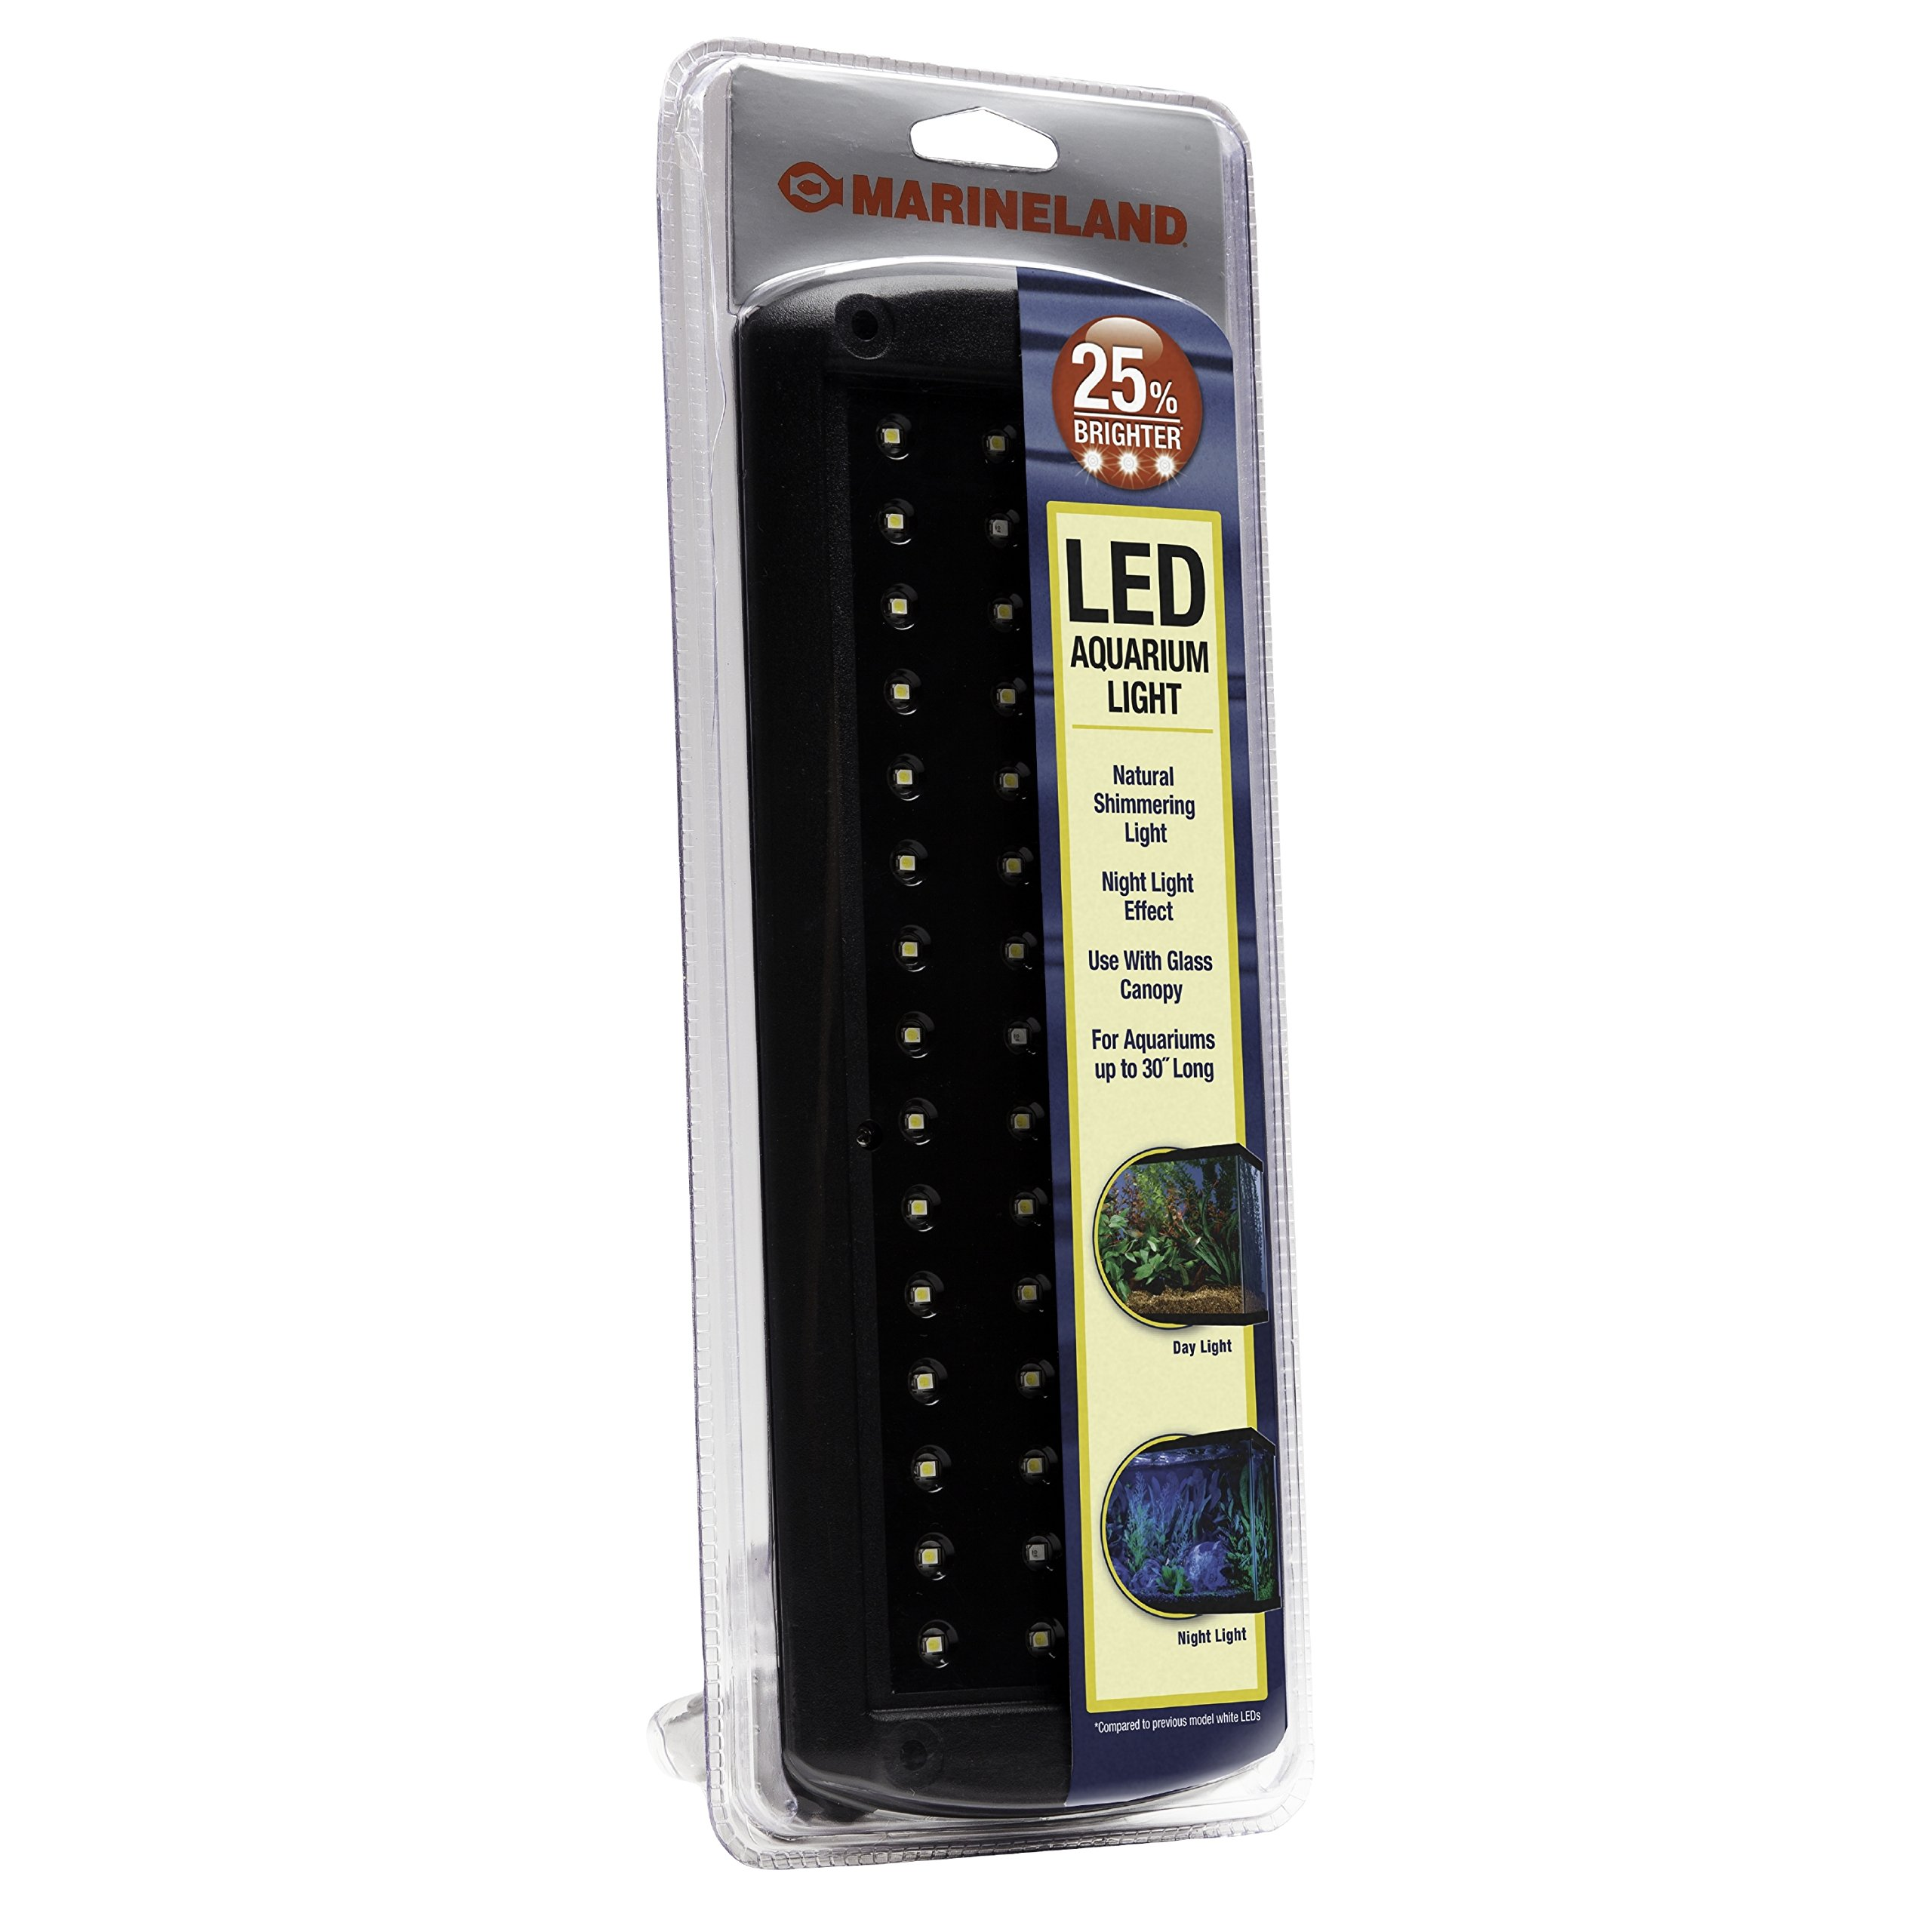 MarineLand LED Aquarium Light, Natural Shimmering Light by MarineLand